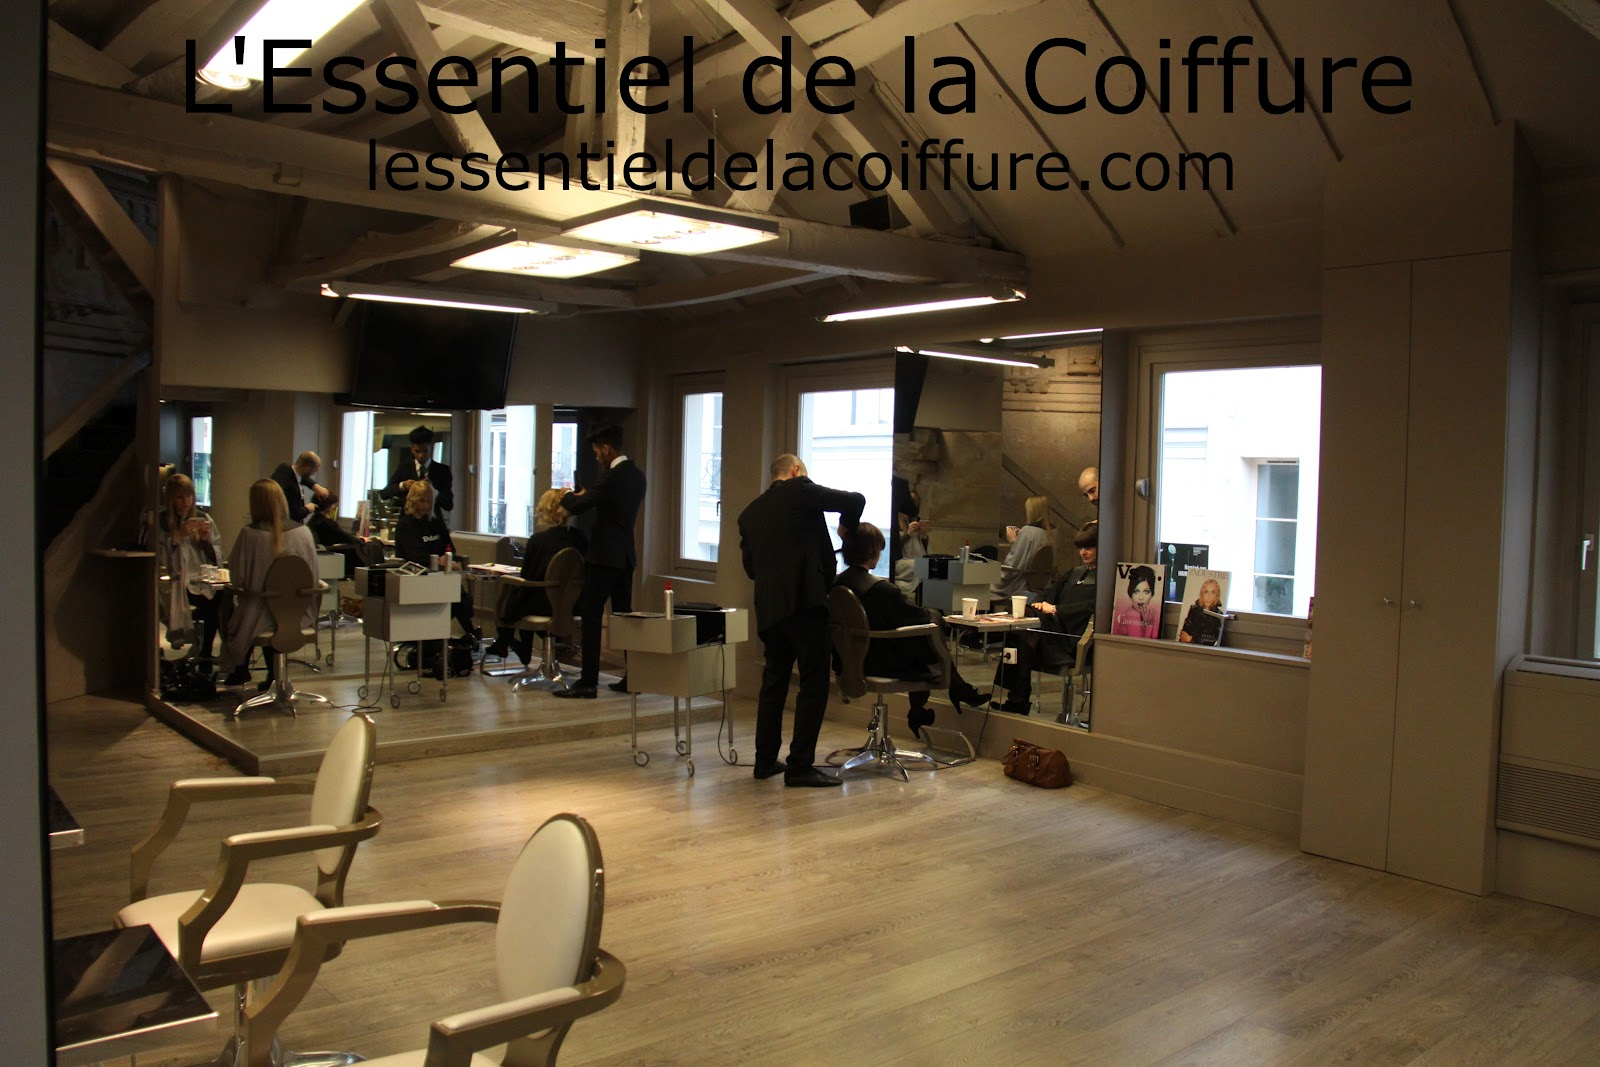 Emejing salon coiffure paris images amazing house design for Salon de coiffure paris 15